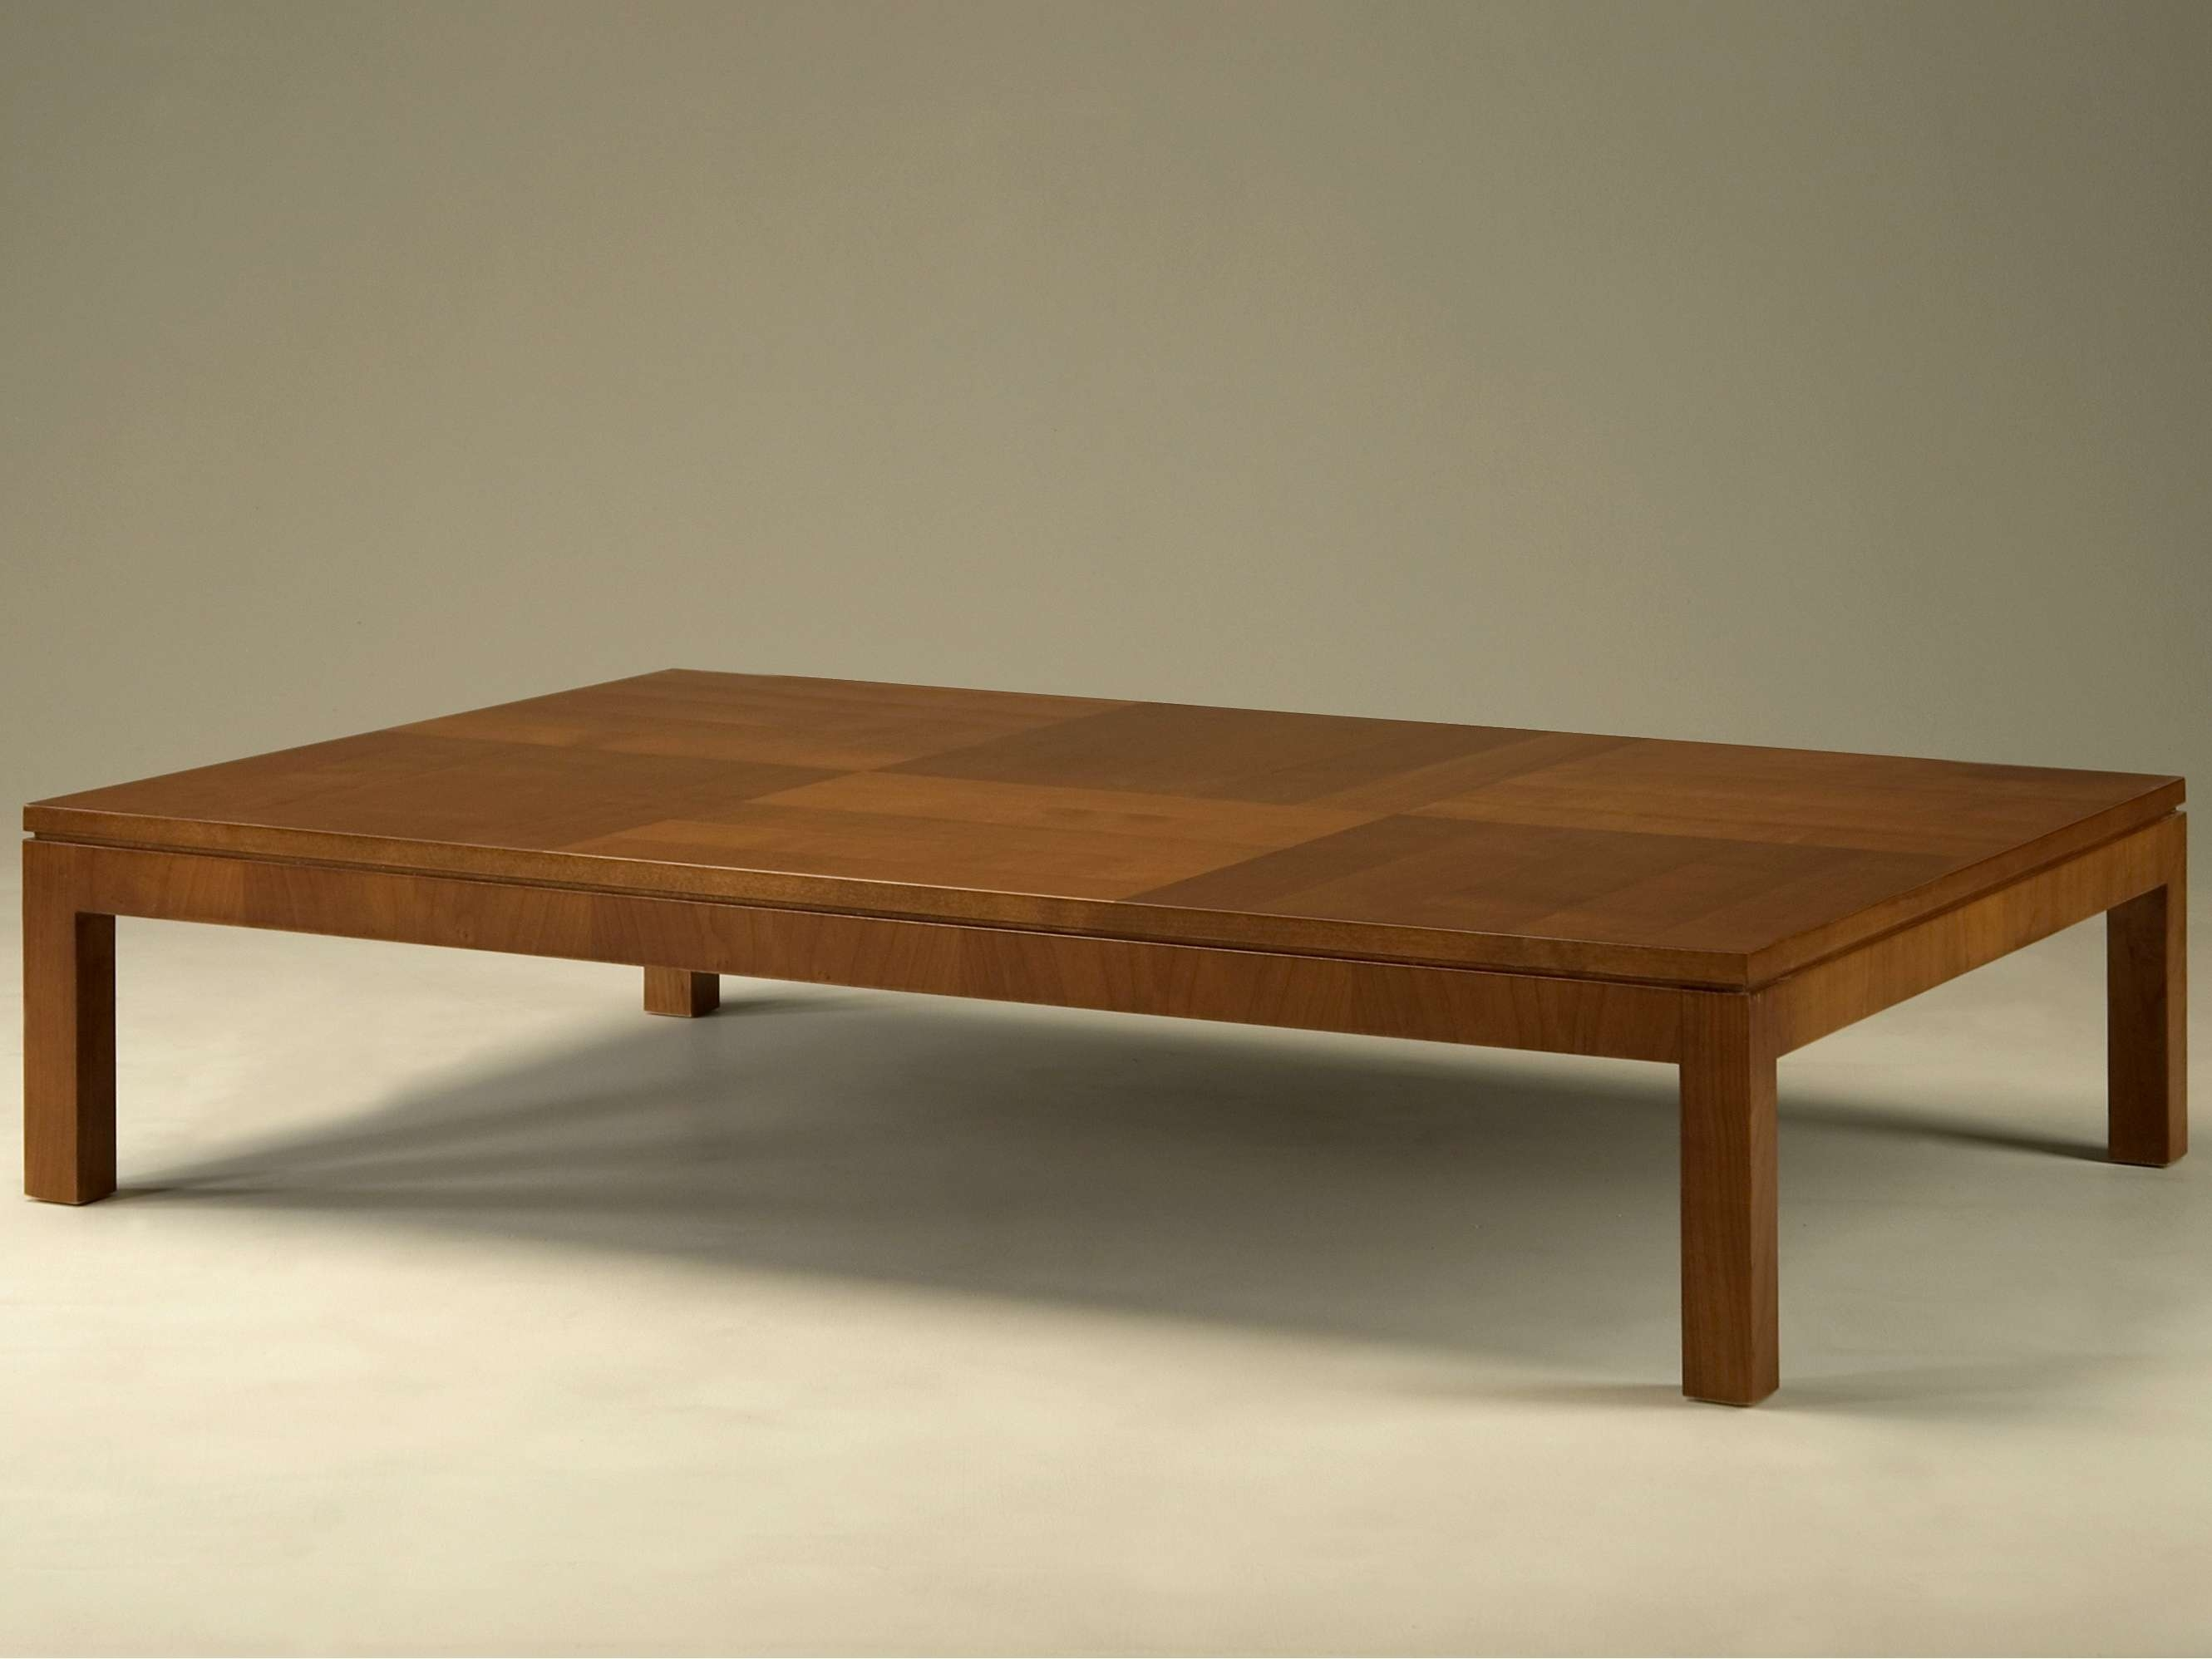 Coffee Tables : Rustic Coffee Table Sets Square End Plans Live With Widely Used Low Coffee Tables With Storage (View 5 of 20)